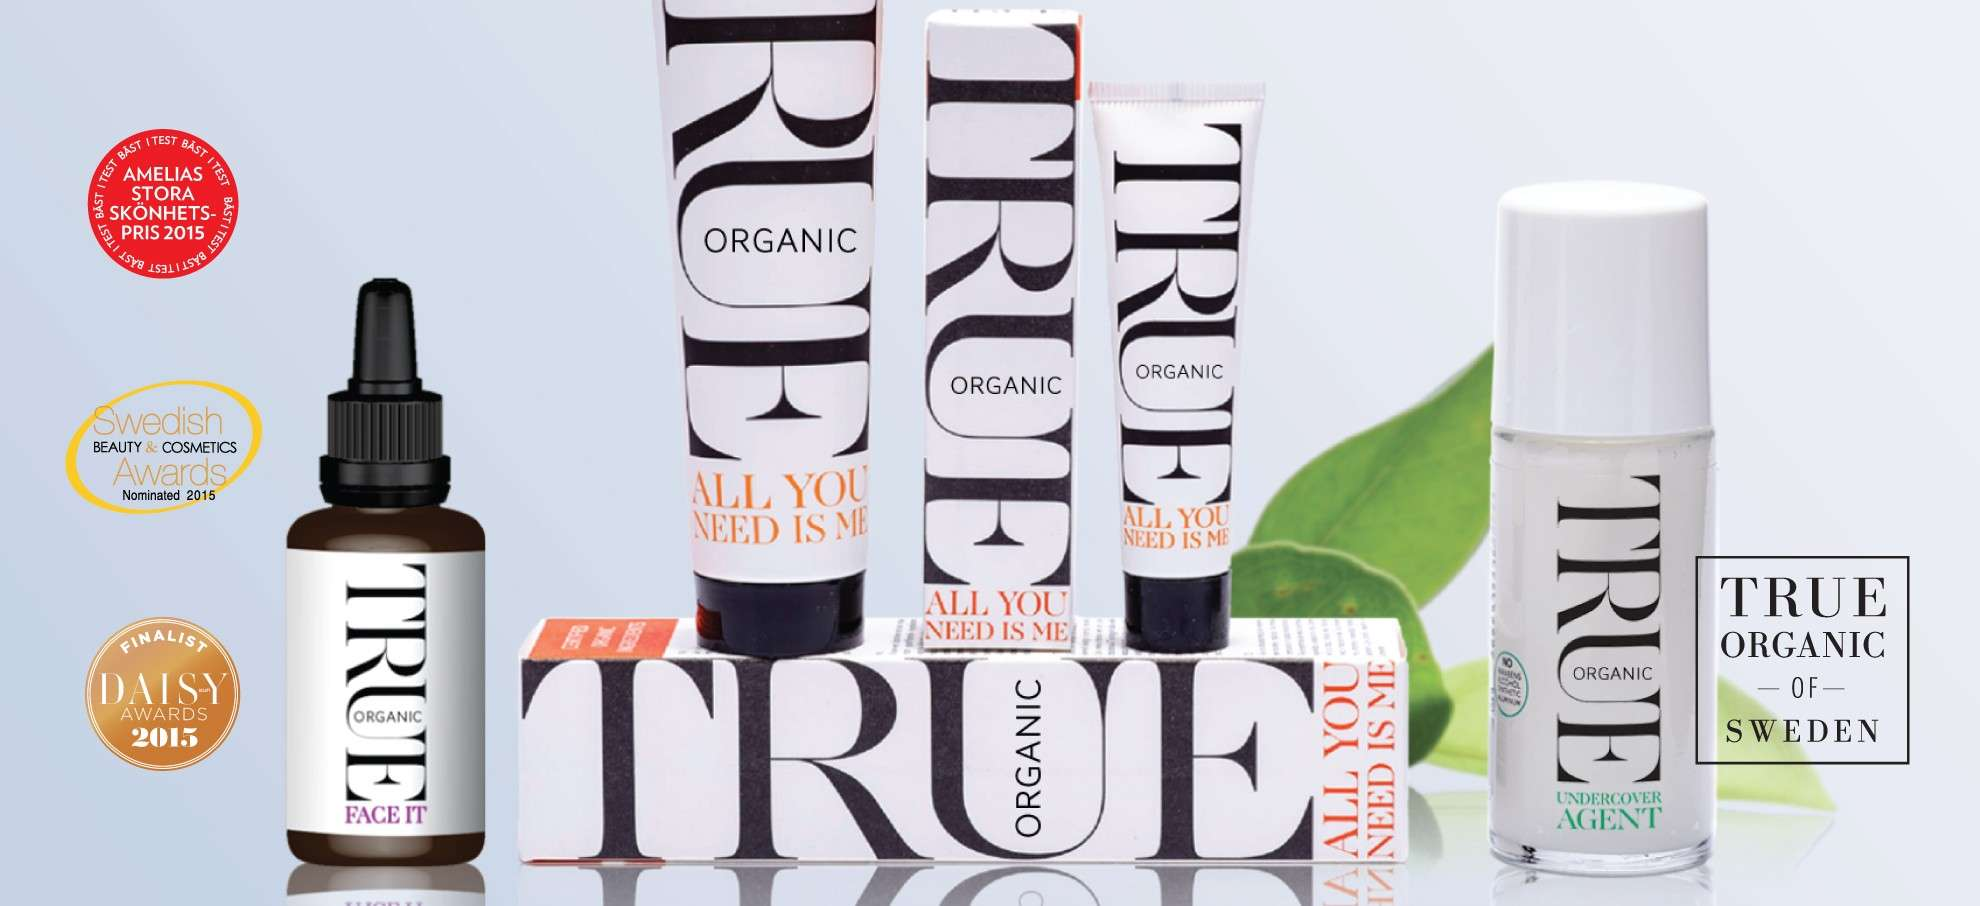 Organic kosmetik - True organic of Sweden